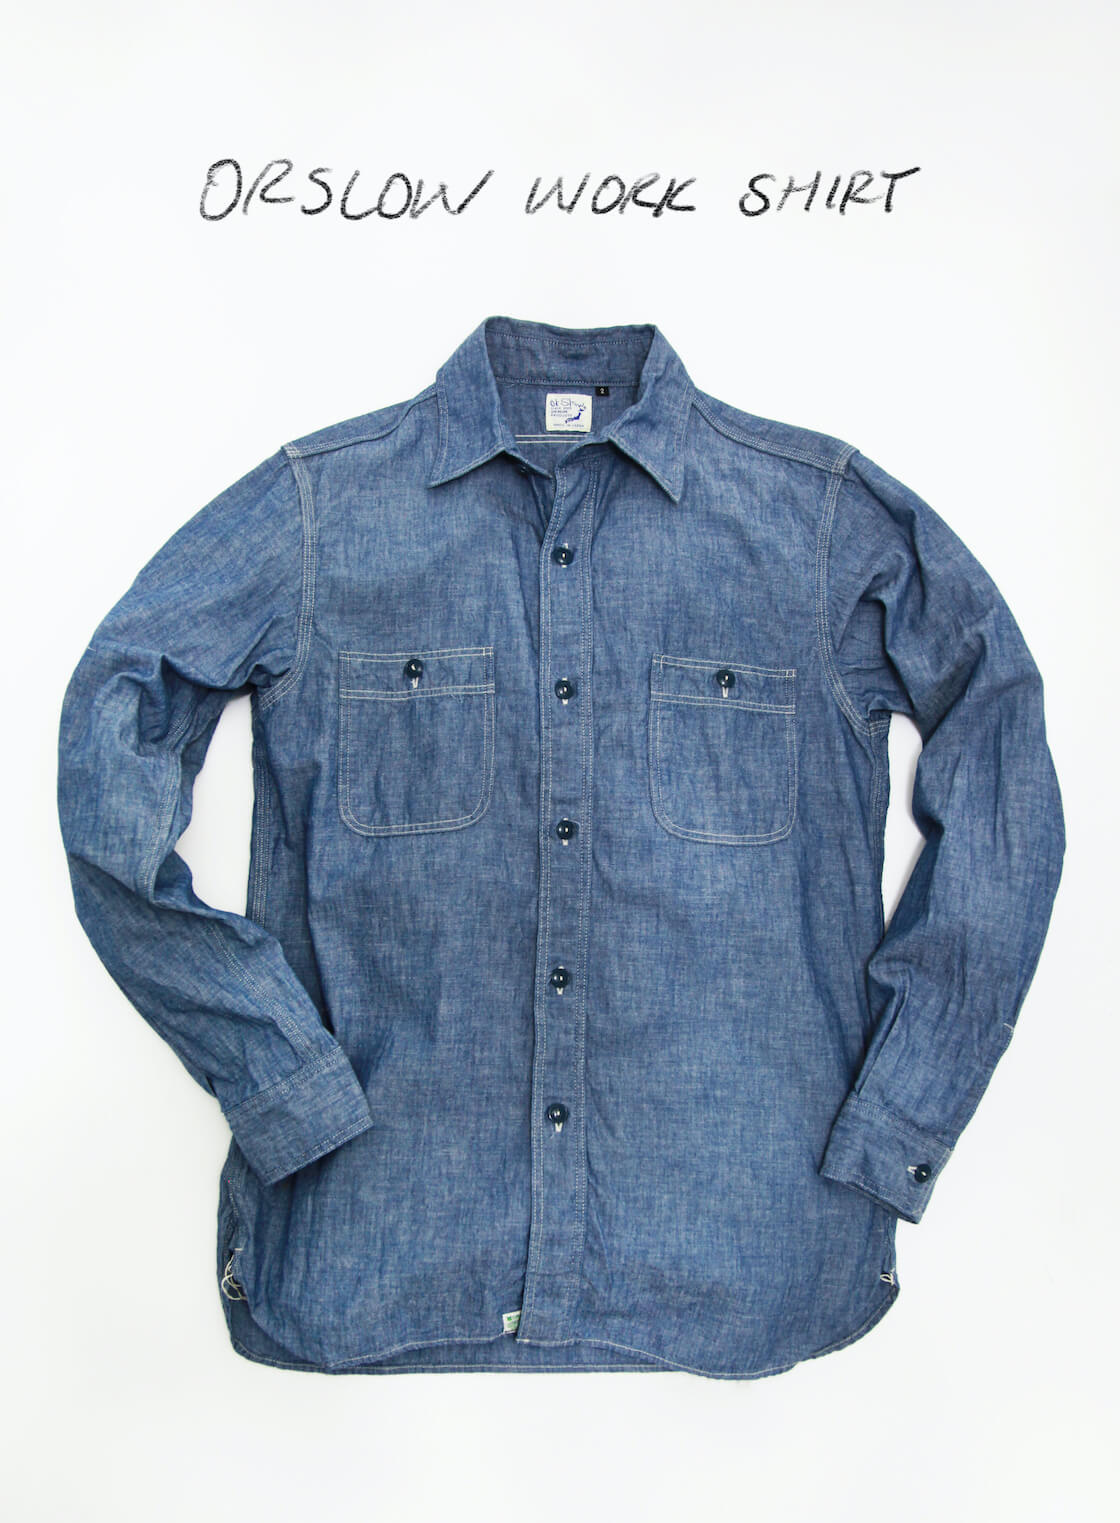 favorite chambray is the orslow work shirt